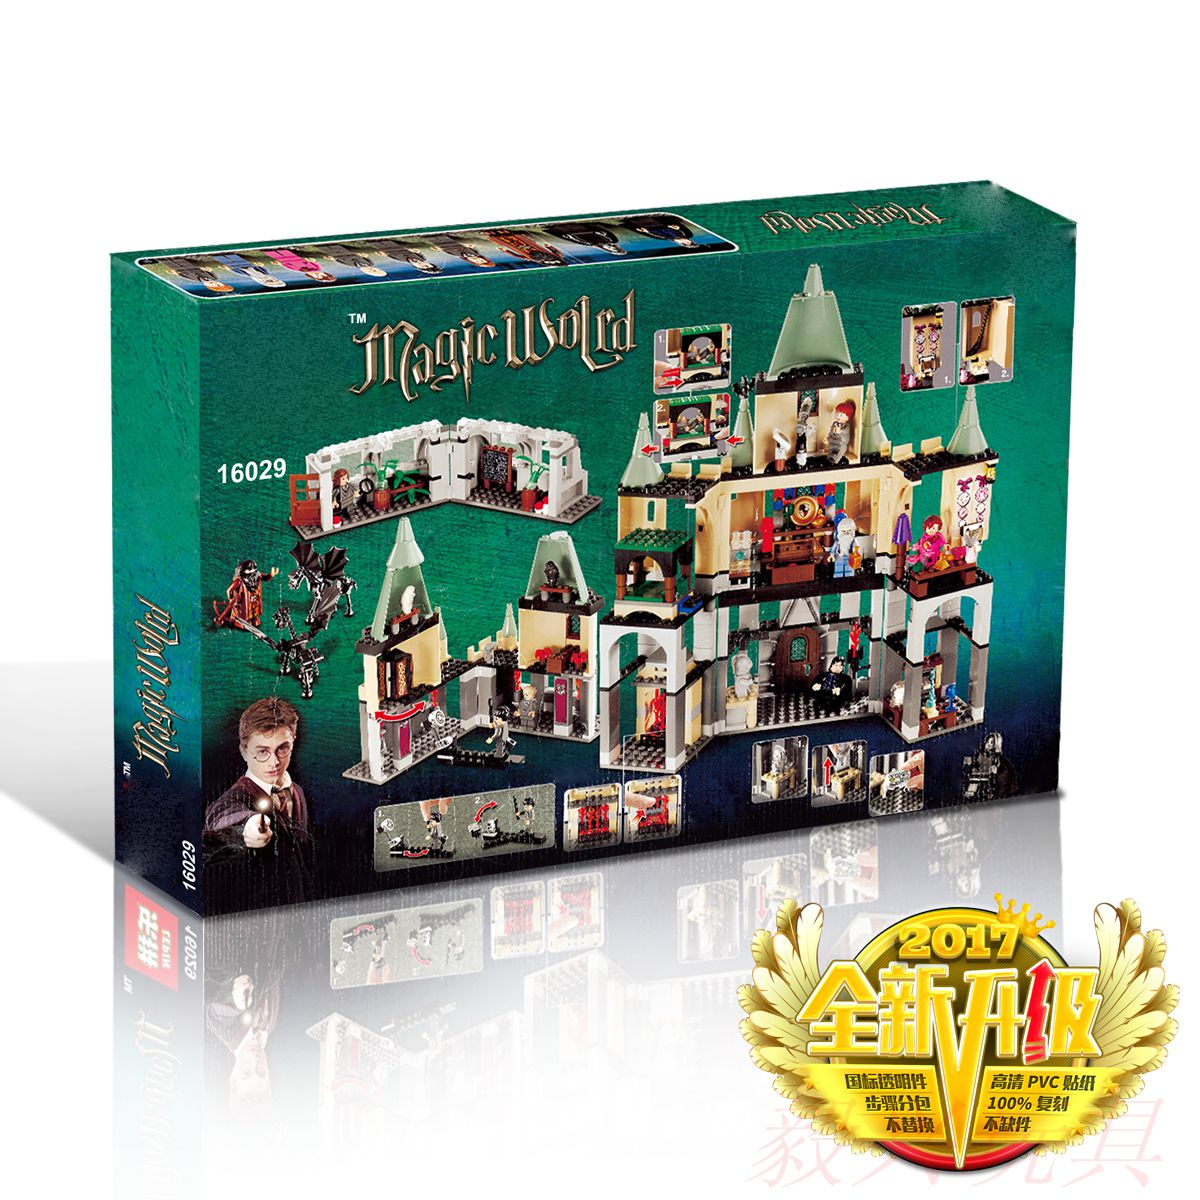 1033+ PCS Building Bricks, LP 16029 Building Blocks 5378 Hogwarts Castle.